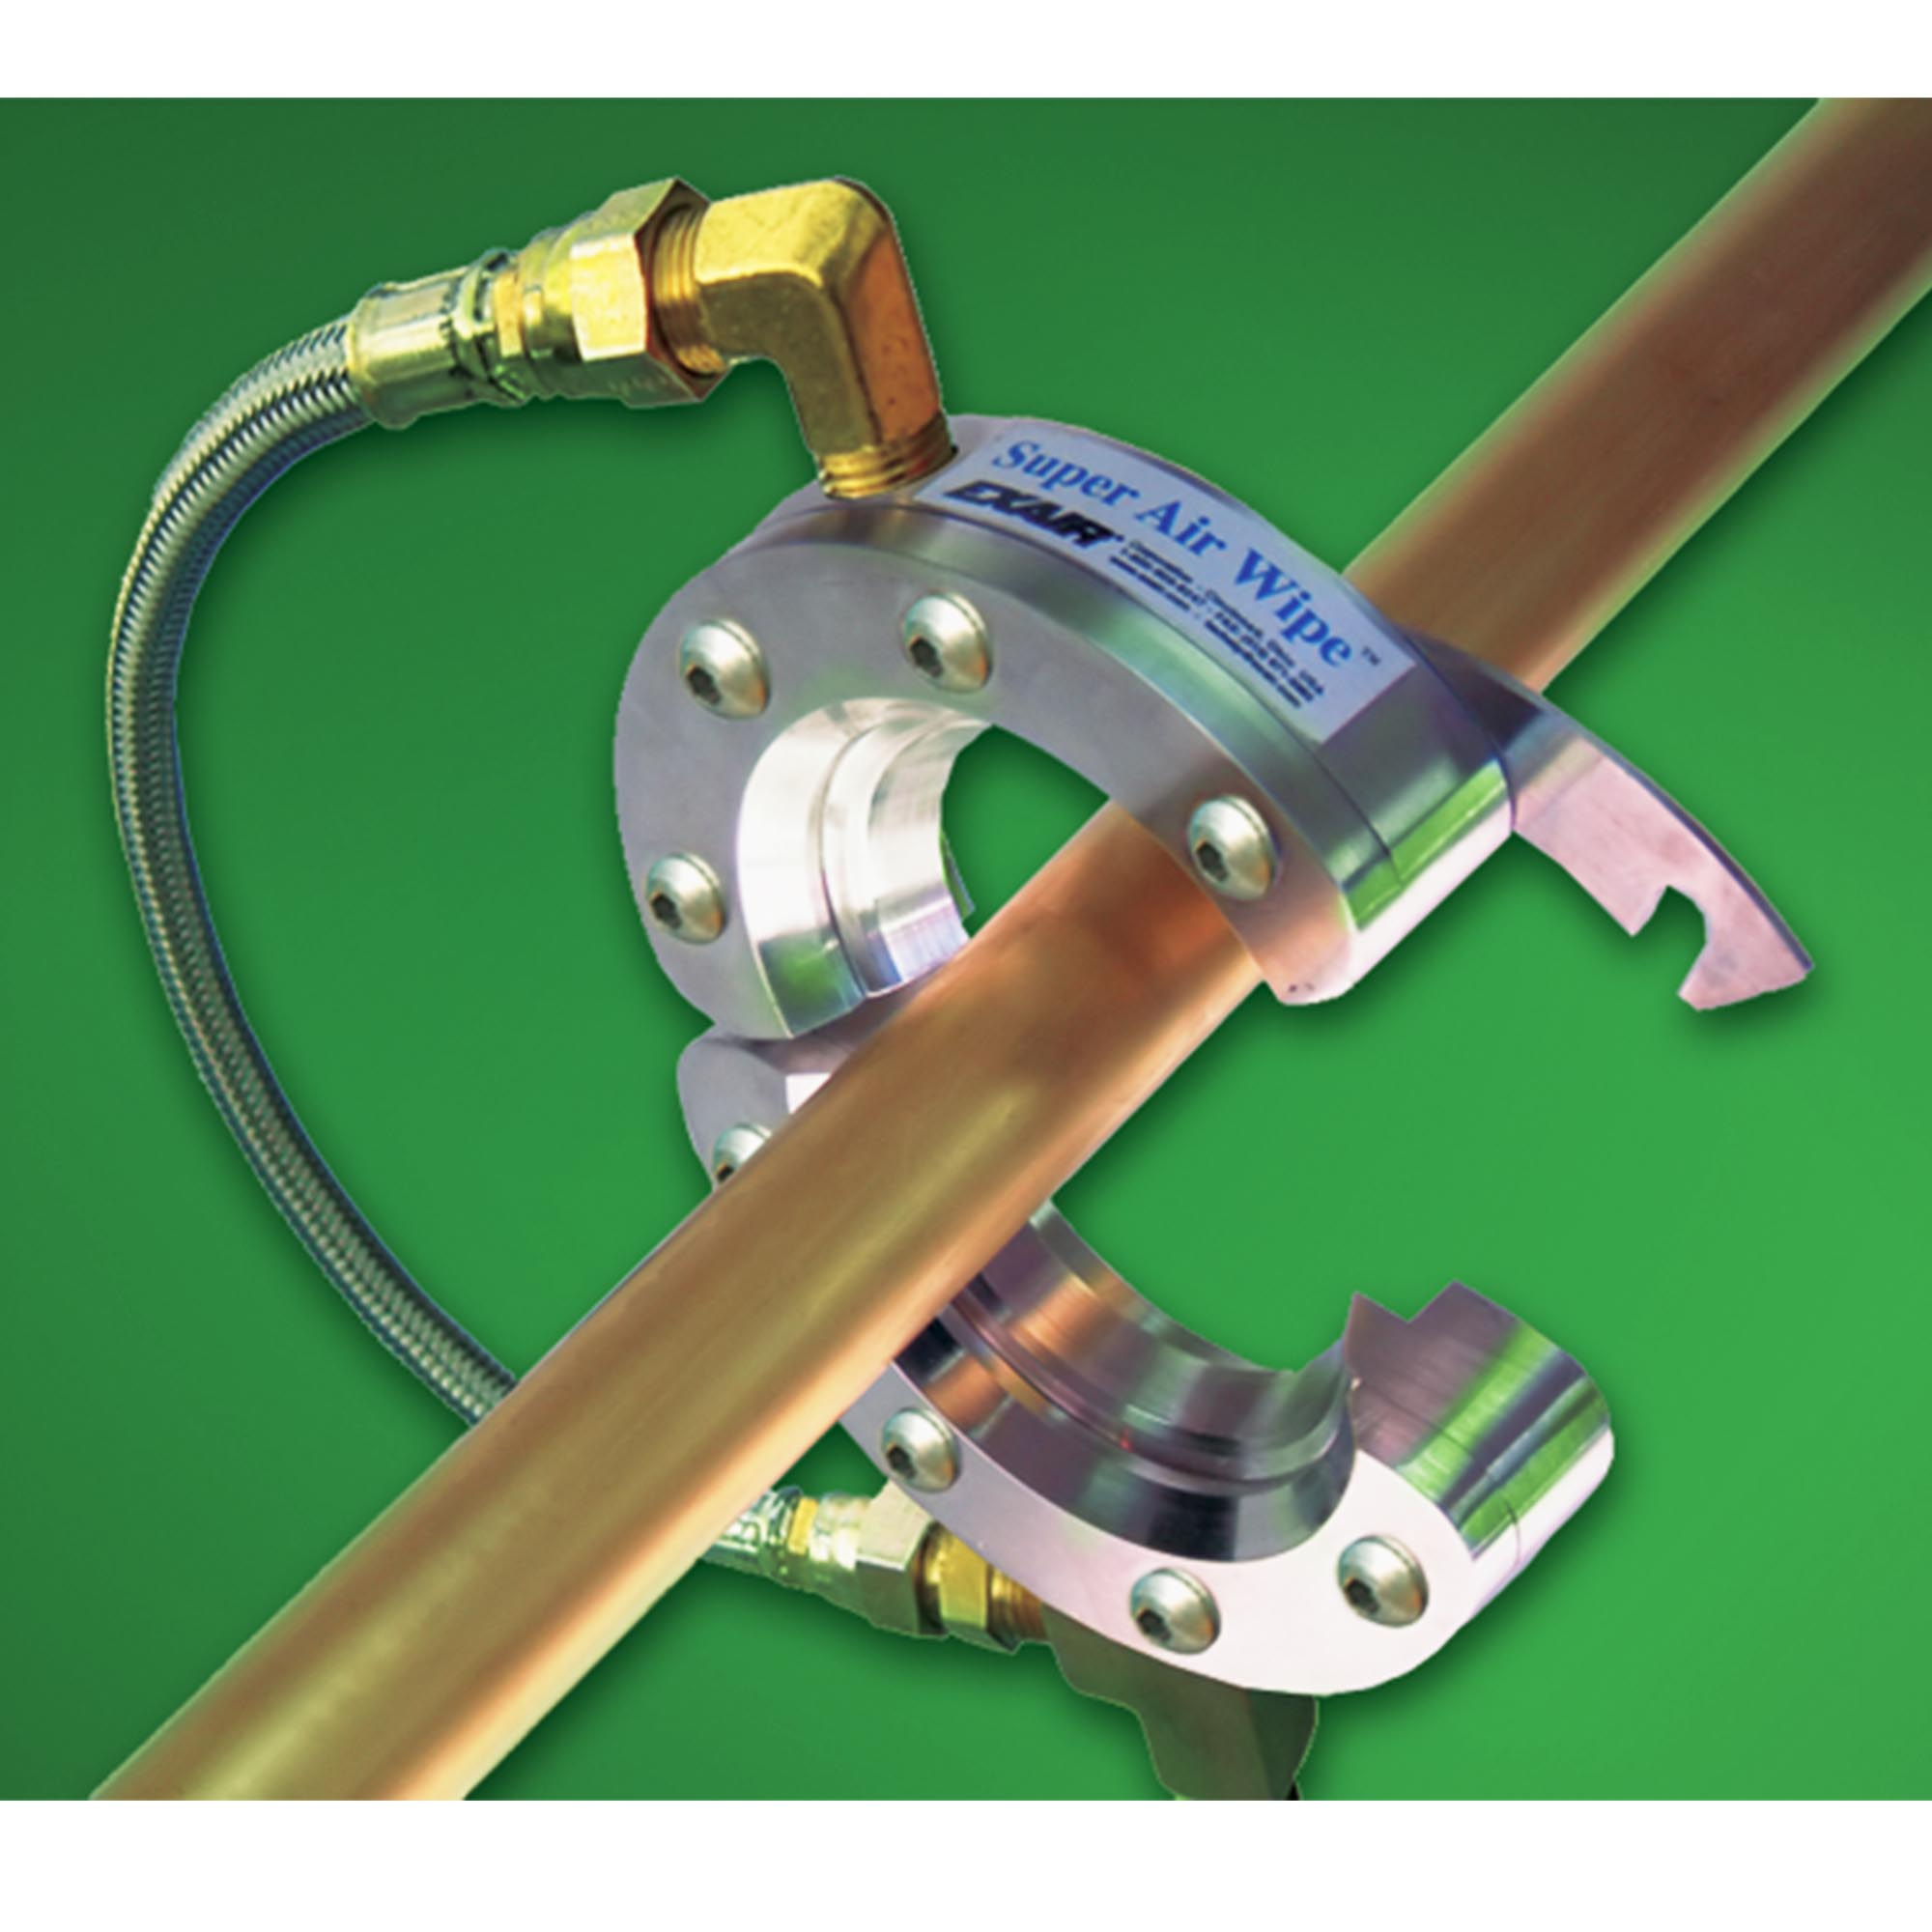 The split design of the Super Air Wipe allows easy installation without threading.